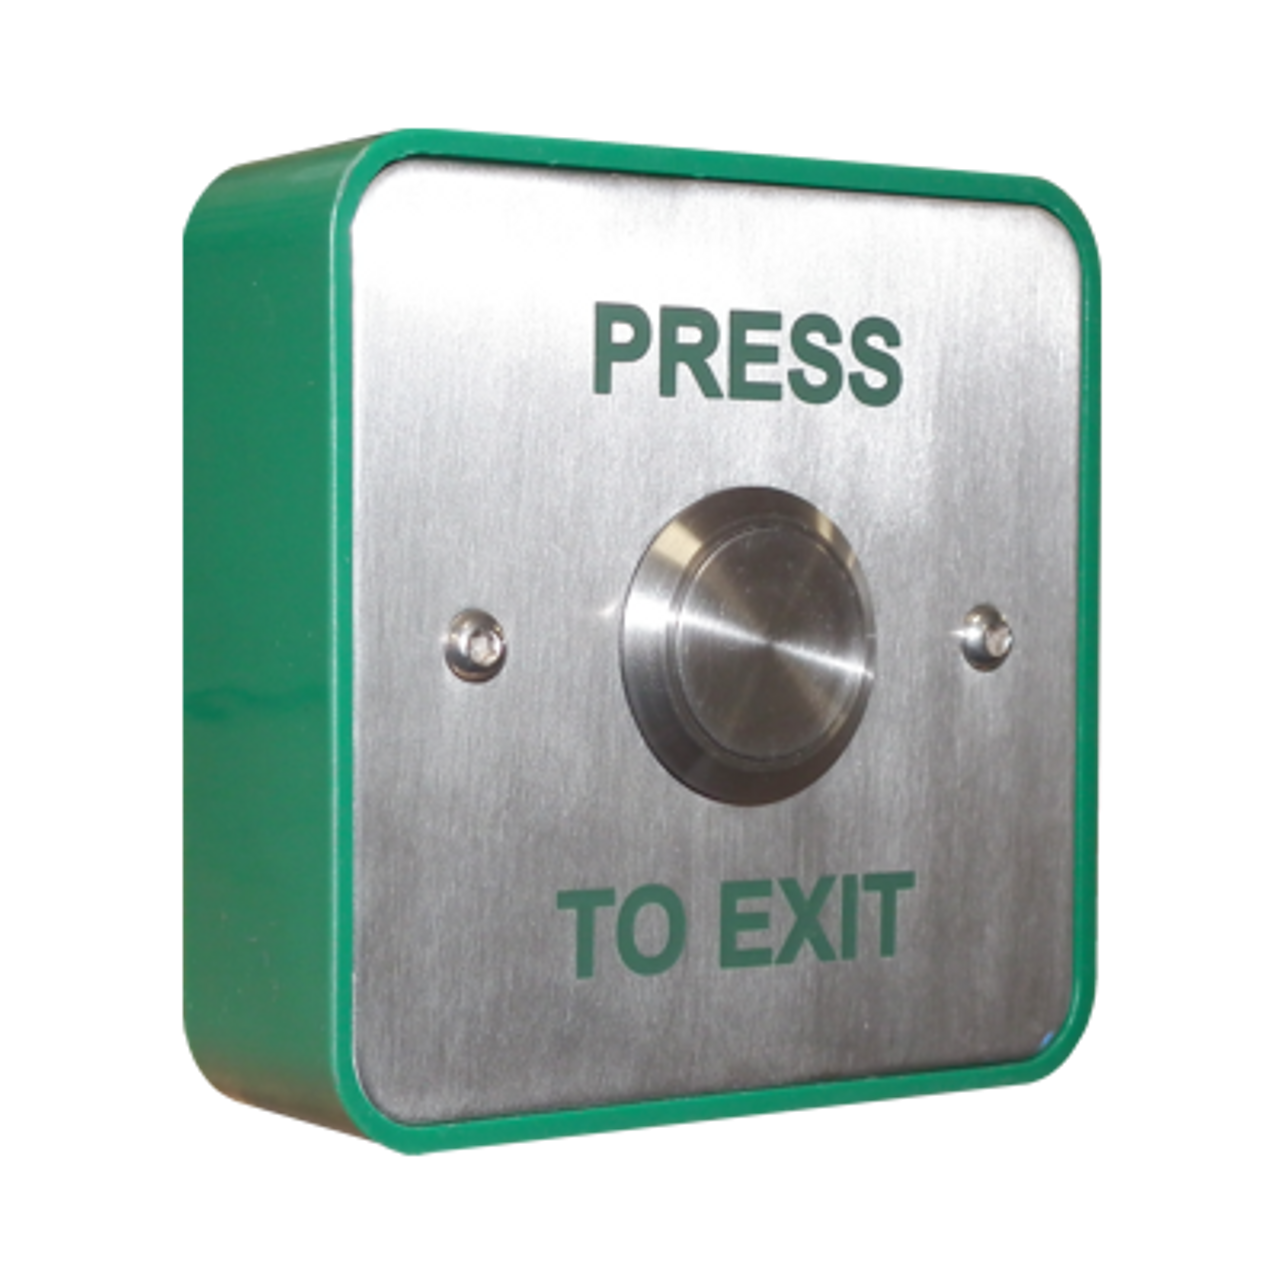 EBSS02/PTE Standard stainless steel with stainless steel push to exit button